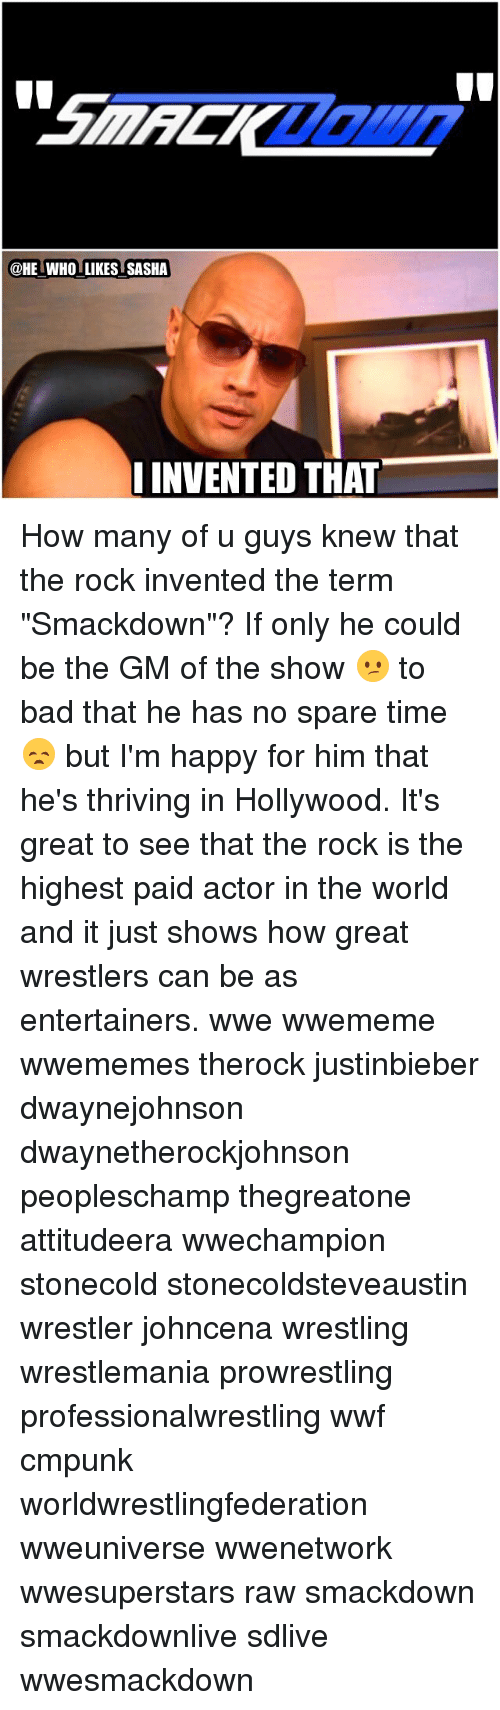 "Bad, Memes, and The Rock: HE WHO LIKES SASHA  INVENTED THAT How many of u guys knew that the rock invented the term ""Smackdown""? If only he could be the GM of the show 😕 to bad that he has no spare time😞 but I'm happy for him that he's thriving in Hollywood. It's great to see that the rock is the highest paid actor in the world and it just shows how great wrestlers can be as entertainers. wwe wwememe wwememes therock justinbieber dwaynejohnson dwaynetherockjohnson peopleschamp thegreatone attitudeera wwechampion stonecold stonecoldsteveaustin wrestler johncena wrestling wrestlemania prowrestling professionalwrestling wwf cmpunk worldwrestlingfederation wweuniverse wwenetwork wwesuperstars raw smackdown smackdownlive sdlive wwesmackdown"